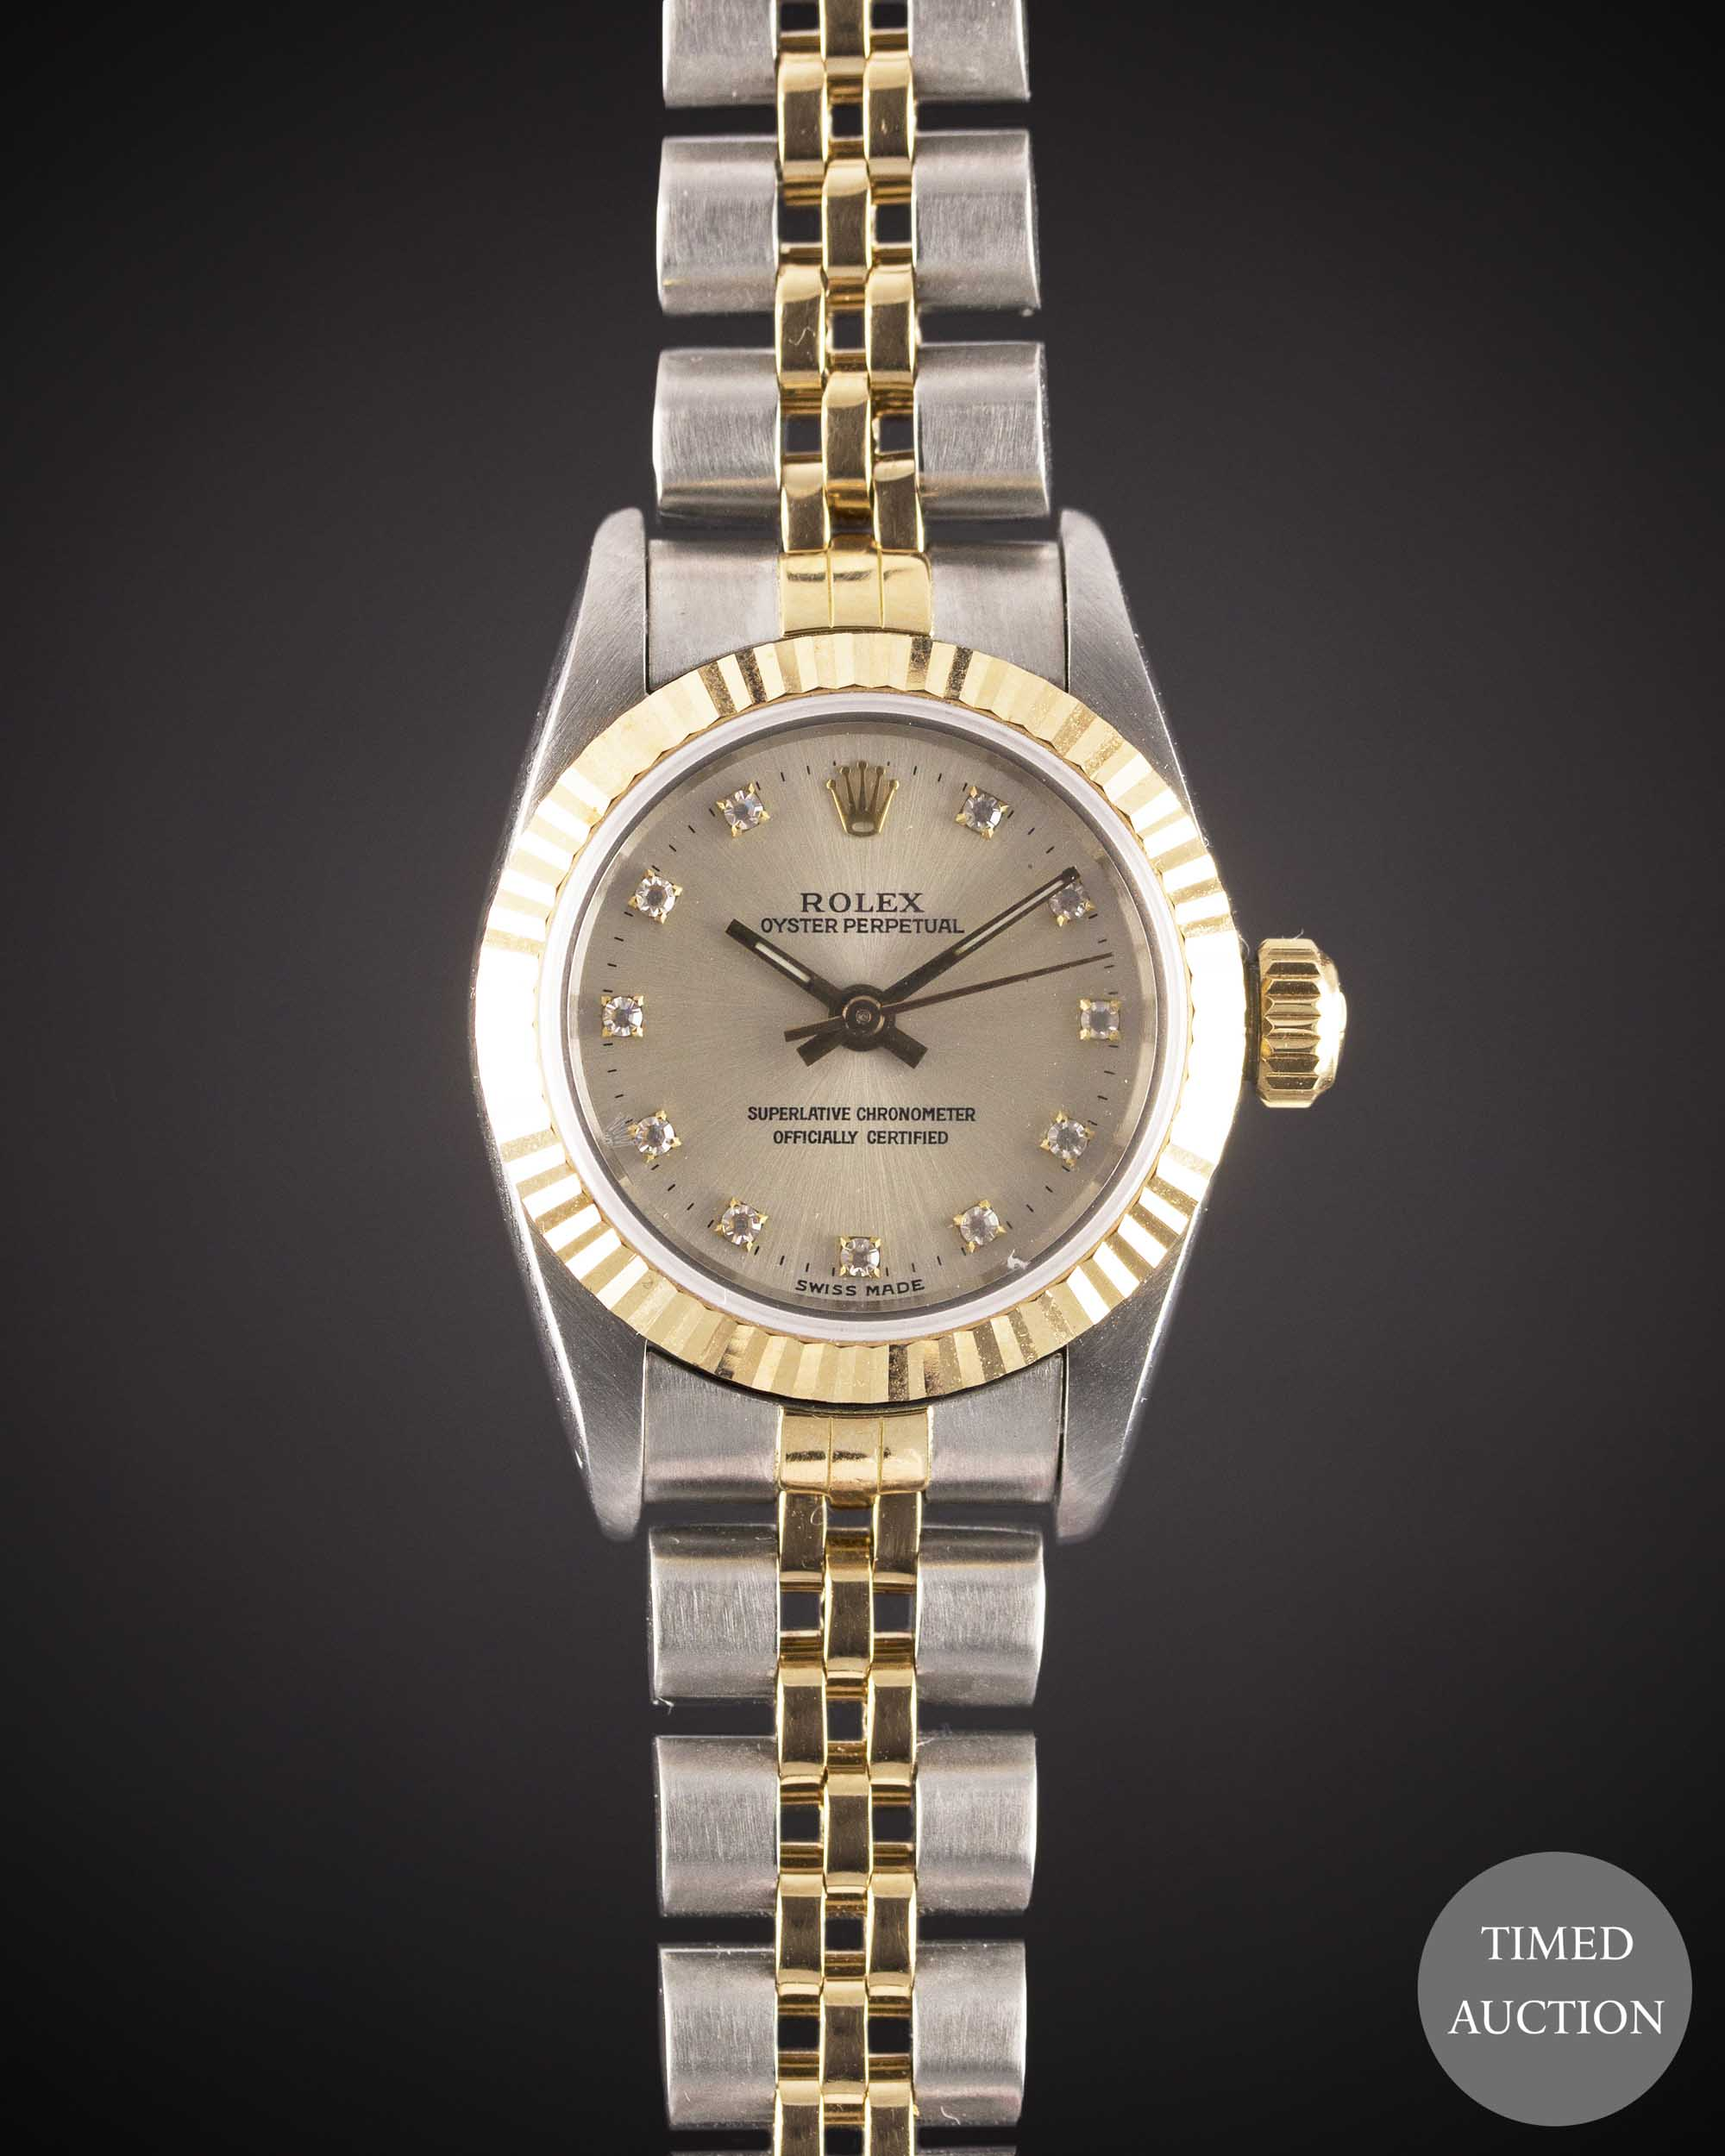 Lot 28 - A LADIES STEEL & GOLD ROLEX OYSTER PERPETUAL BRACELET WATCH CIRCA 1988, REF. 67193 WITH ORIGINAL